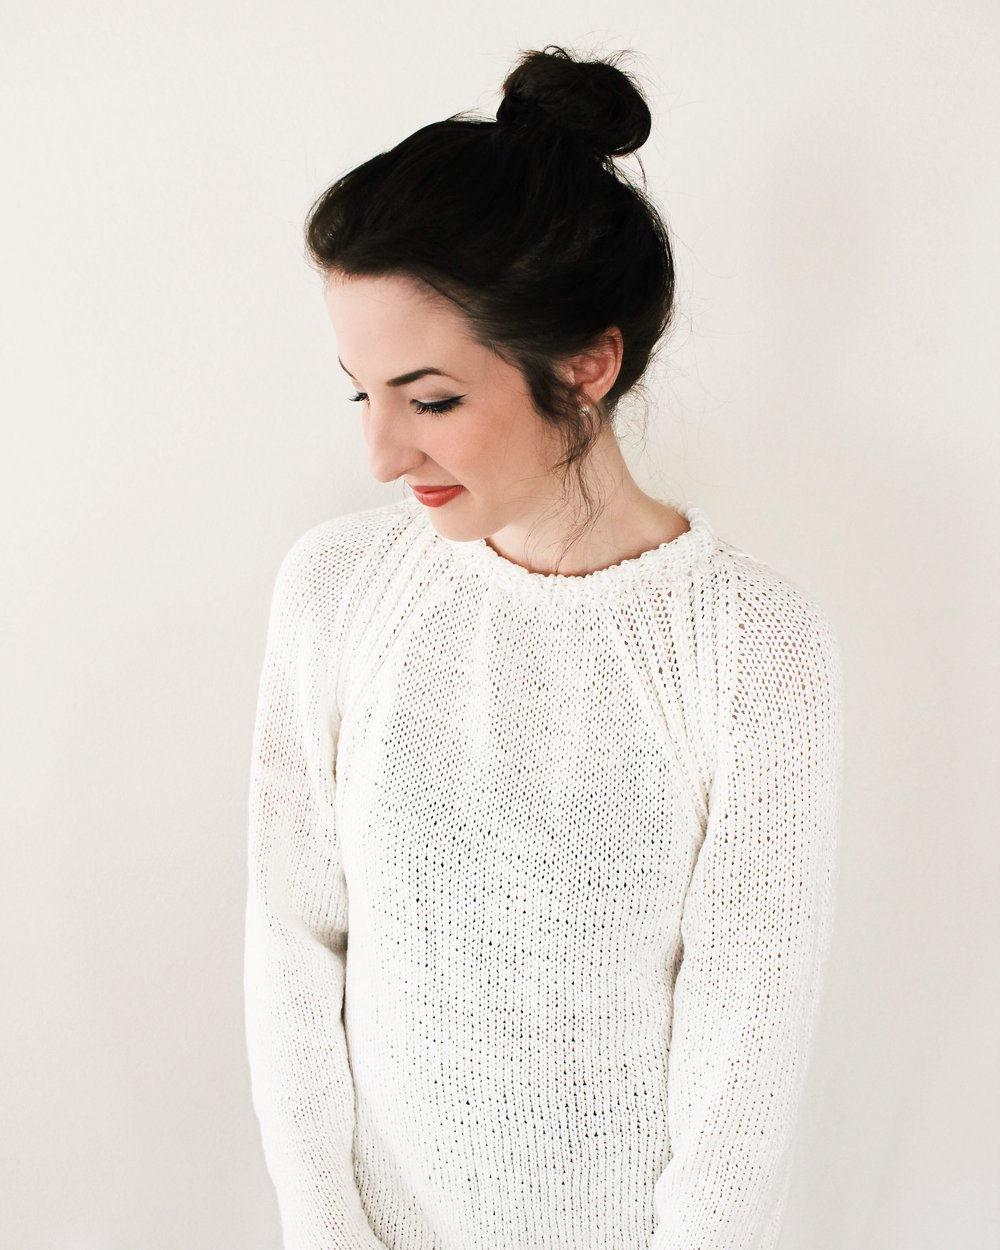 wool and the gang soul sweater kit // darling be brave